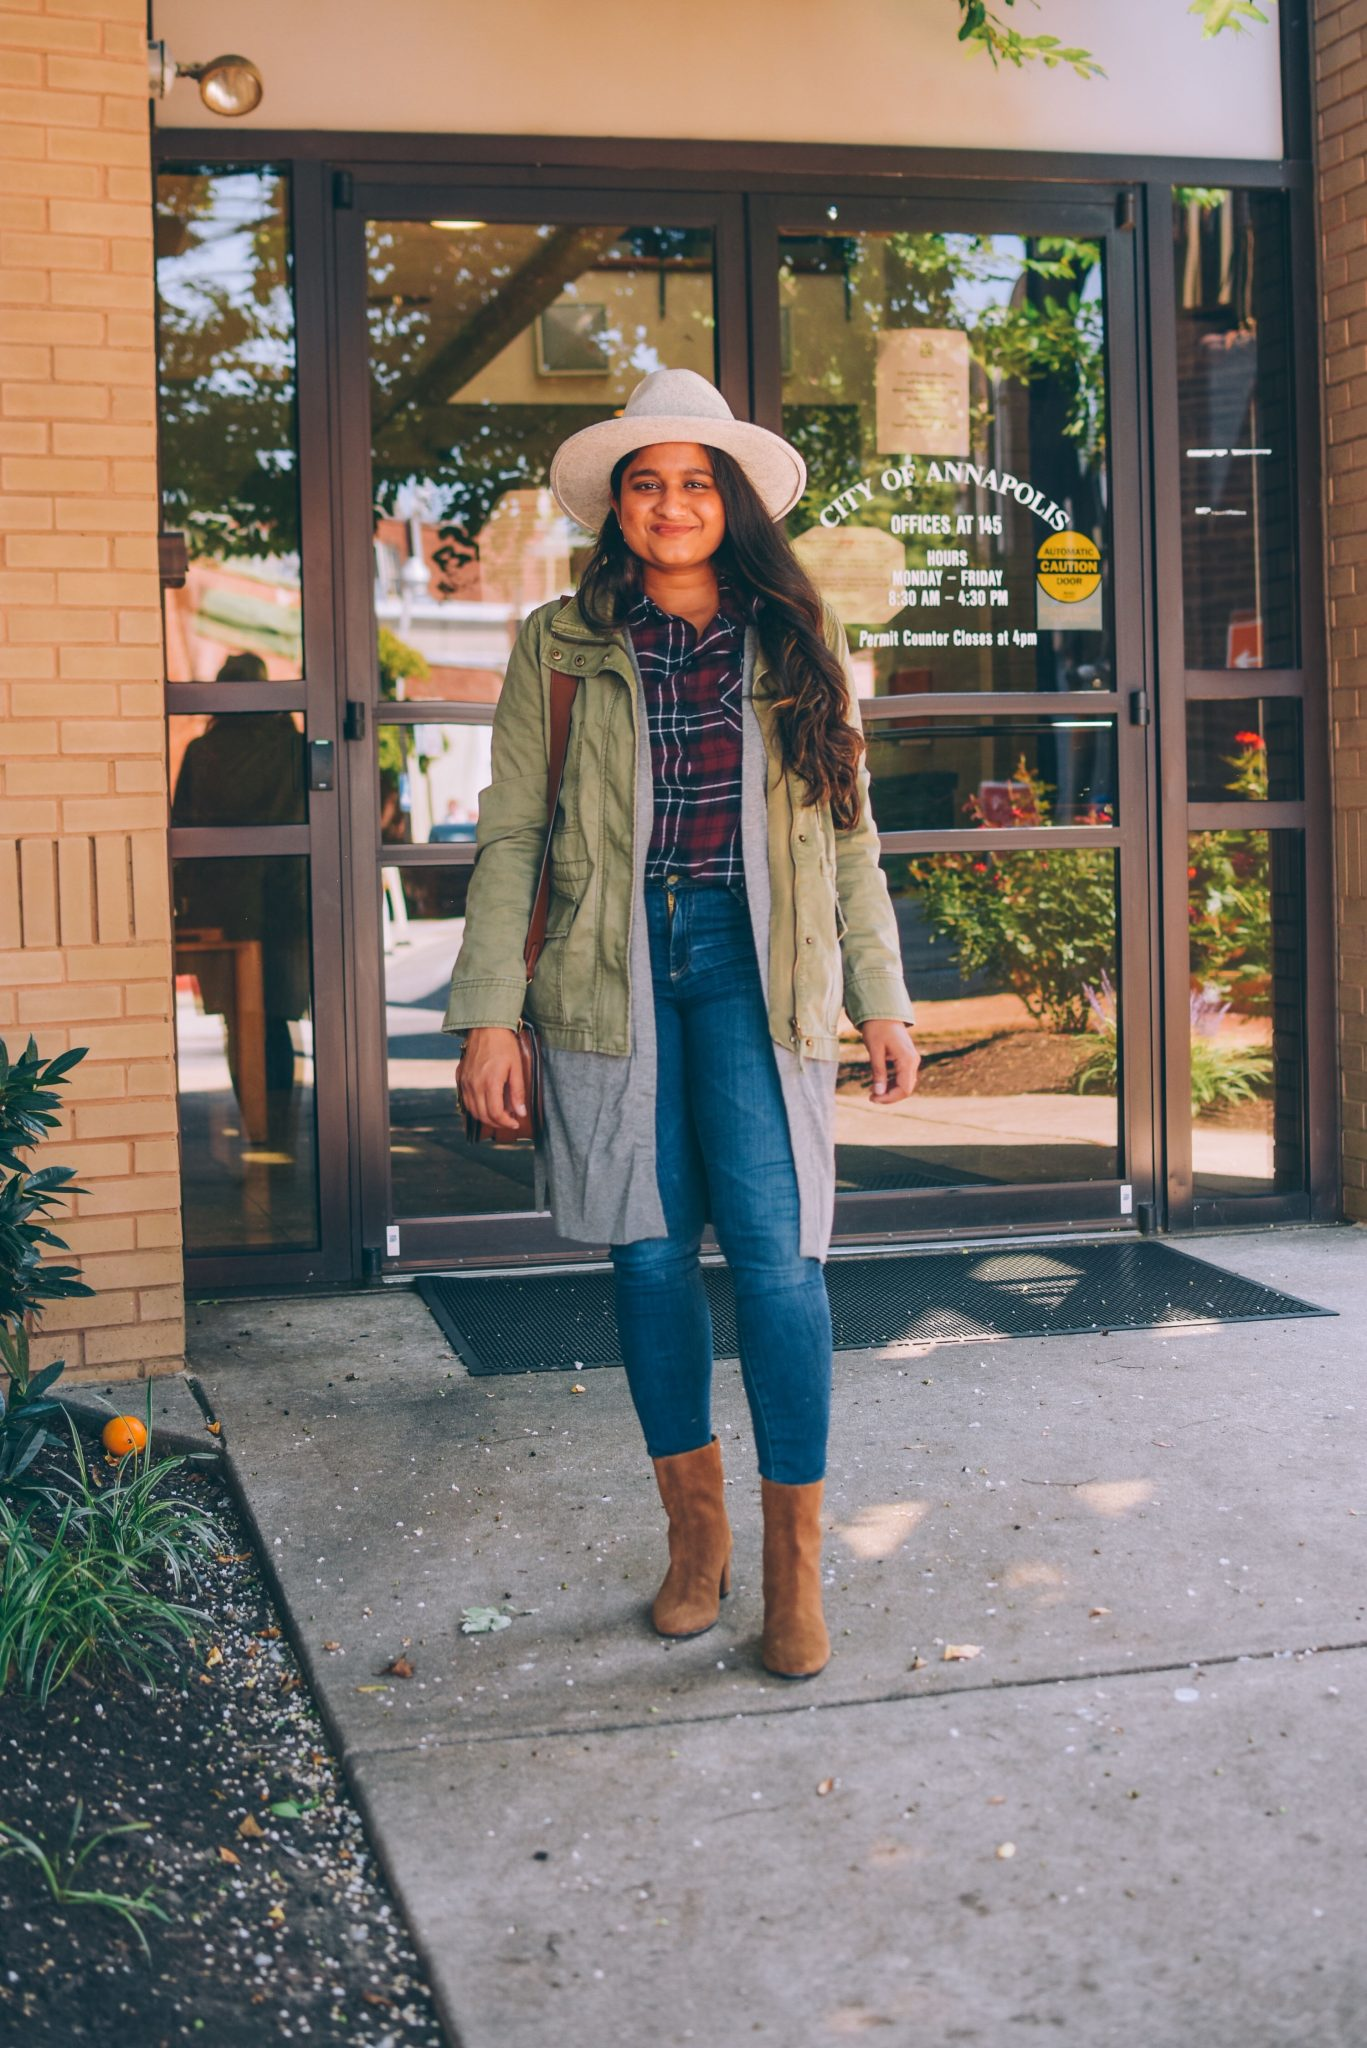 Wearing halogen Caridgan, madewell utility passage jacket, Ag Ankle Legging Jeans, j.crew willa suede boots, Lack of color grey hat | Utility Jackets by popular Maryland modest fashion blog, Dreaming Loud: image of a woman wearing a halogen Caridgan, madewell utility passage jacket, Ag Ankle Legging Jeans, j.crew willa suede boots, and a Lack of color grey hat.